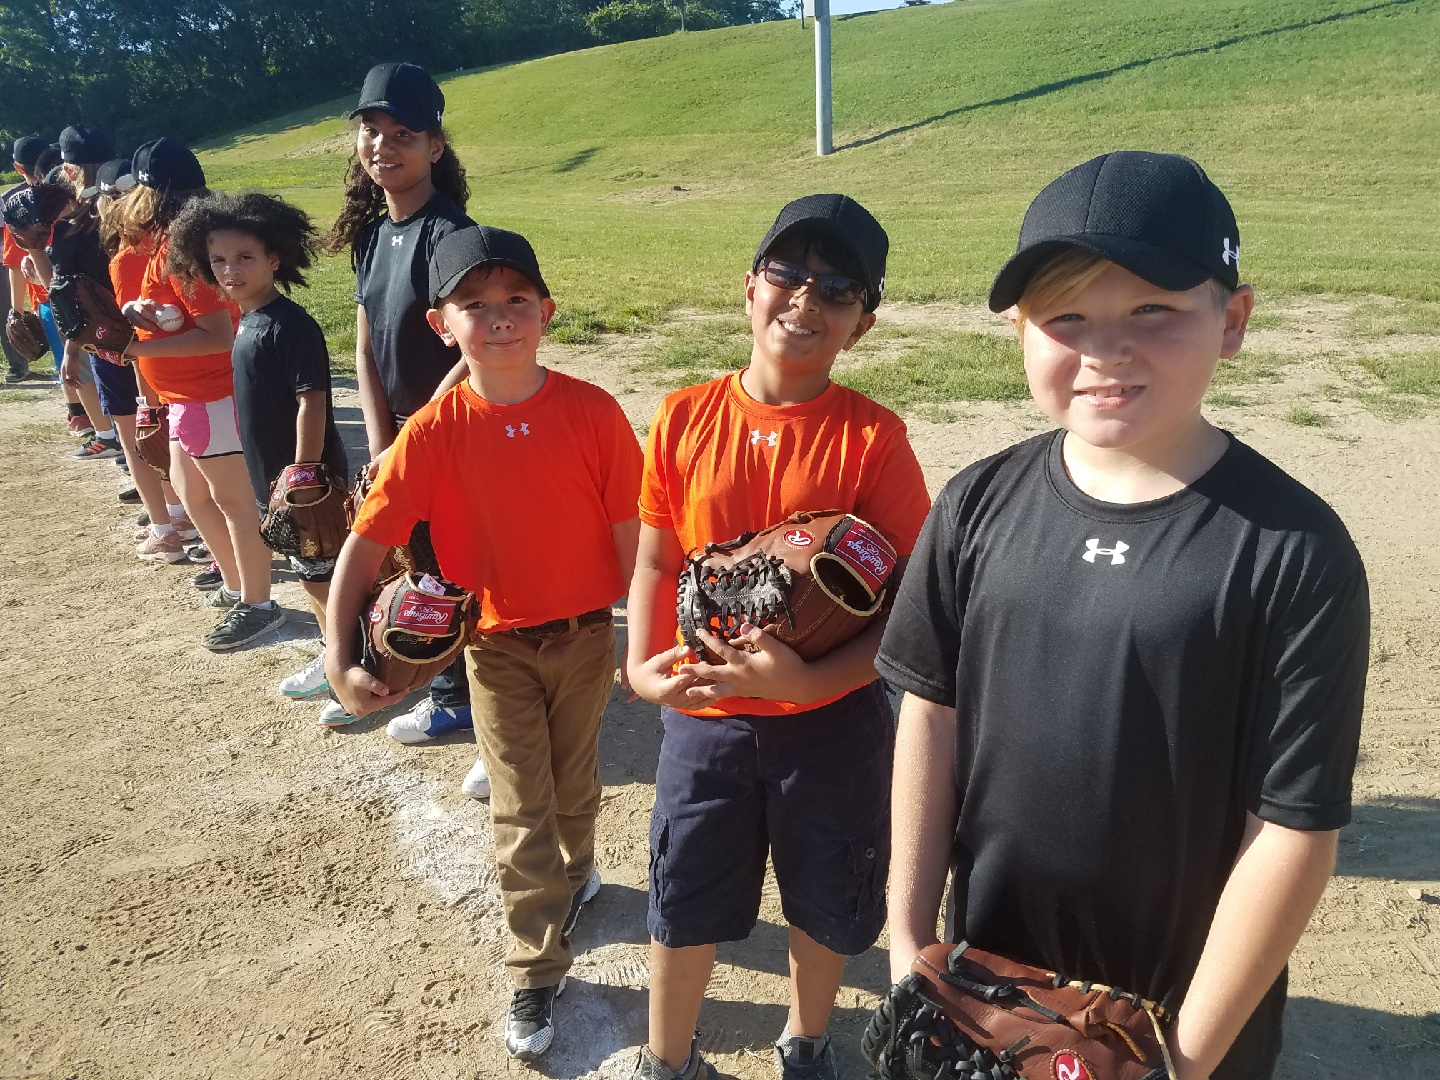 Youth posing with the equipment they received from participating in the Cal Ripken, Sr. Foundation Instructional Leagues